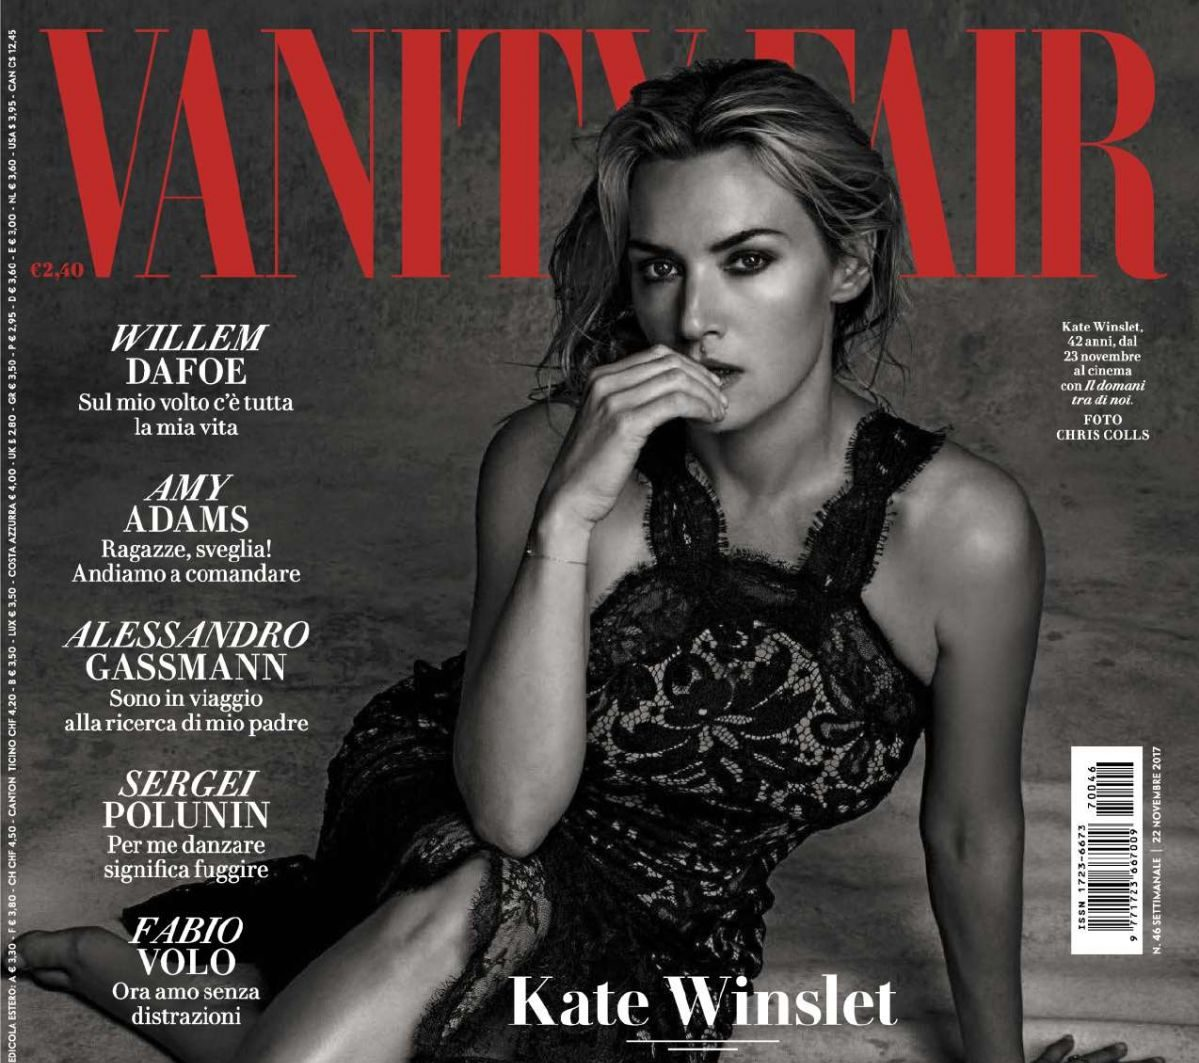 9w3 e1602601616588 20 Things You Might Not Have Realised About Kate Winslet